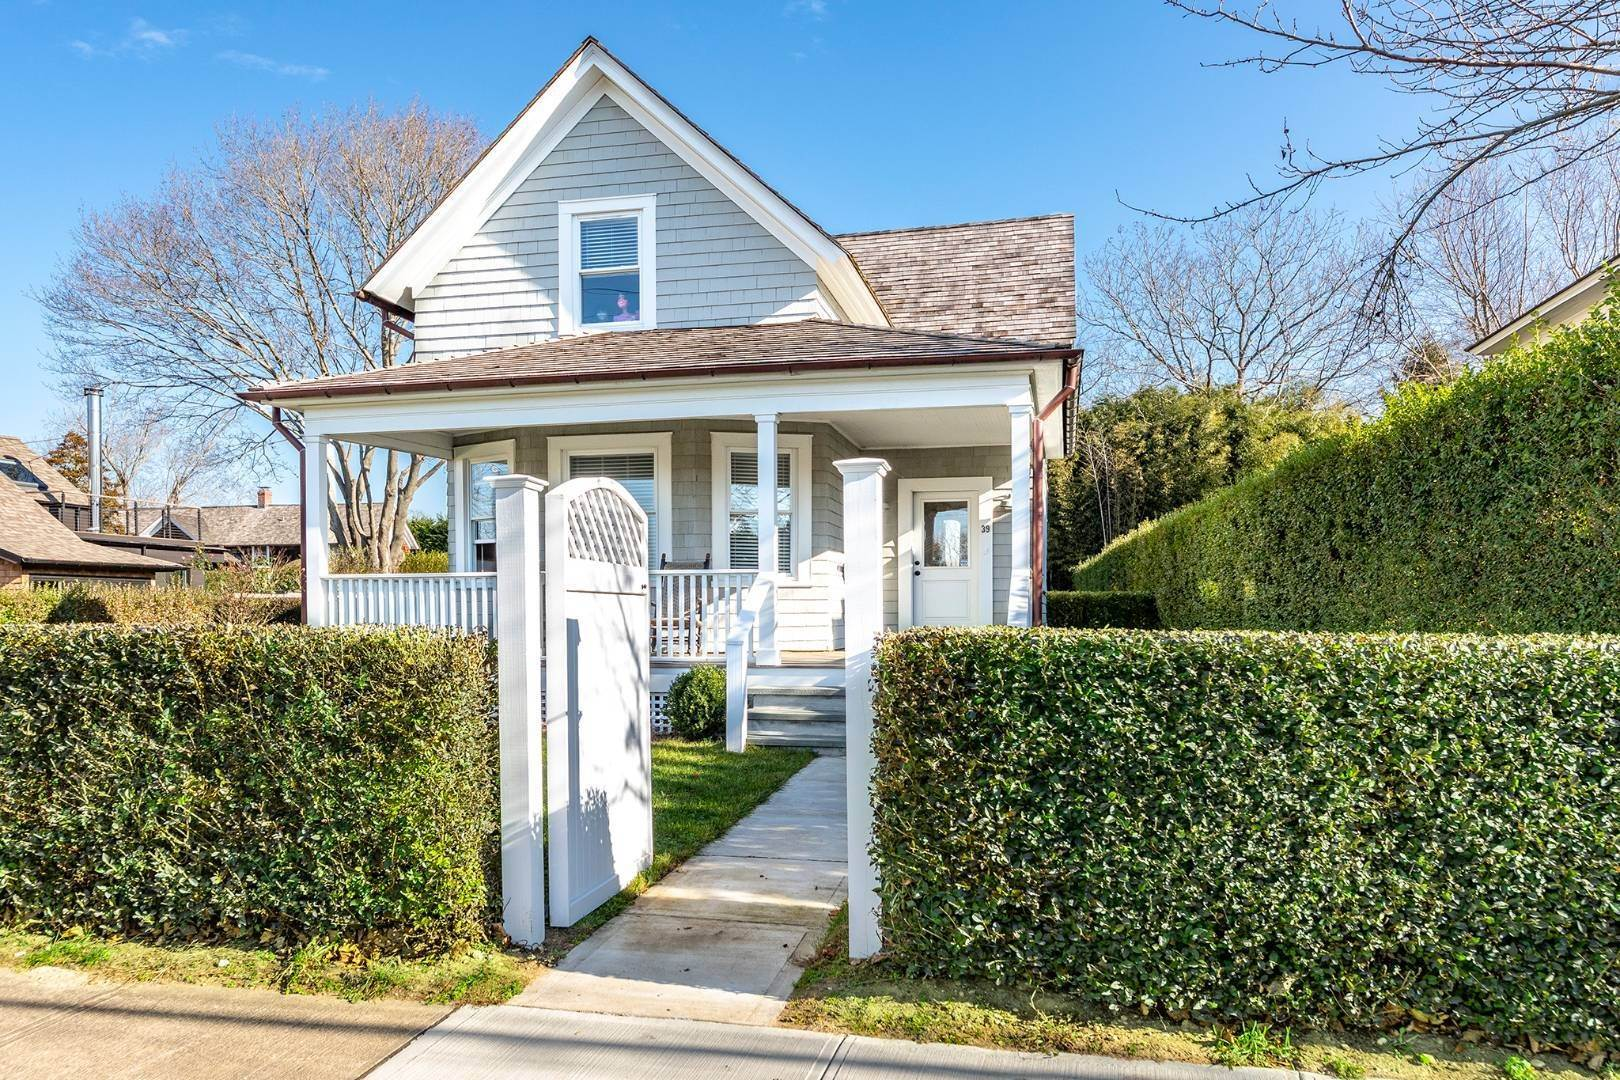 Single Family Home for Sale at Turnkey Bridgehampton Village Charmer 39 Corwith Avenue, Bridgehampton, NY 11932